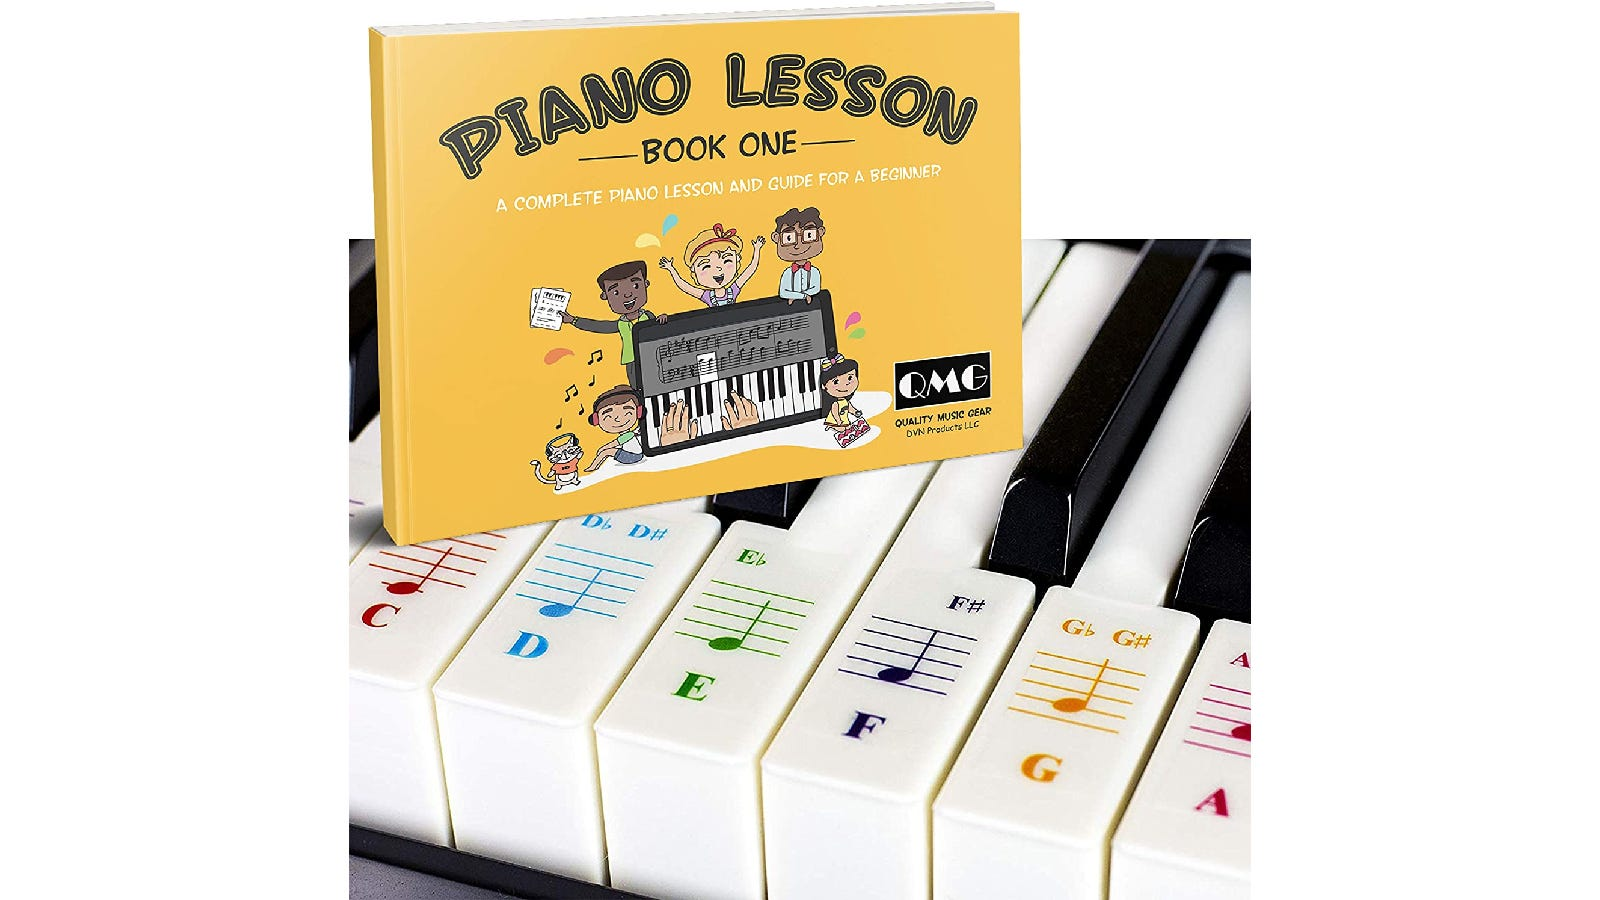 black and white piano keys with colorful, coordinating piano note stickers on the white keys; in the top left corner is a yellow piano lesson book